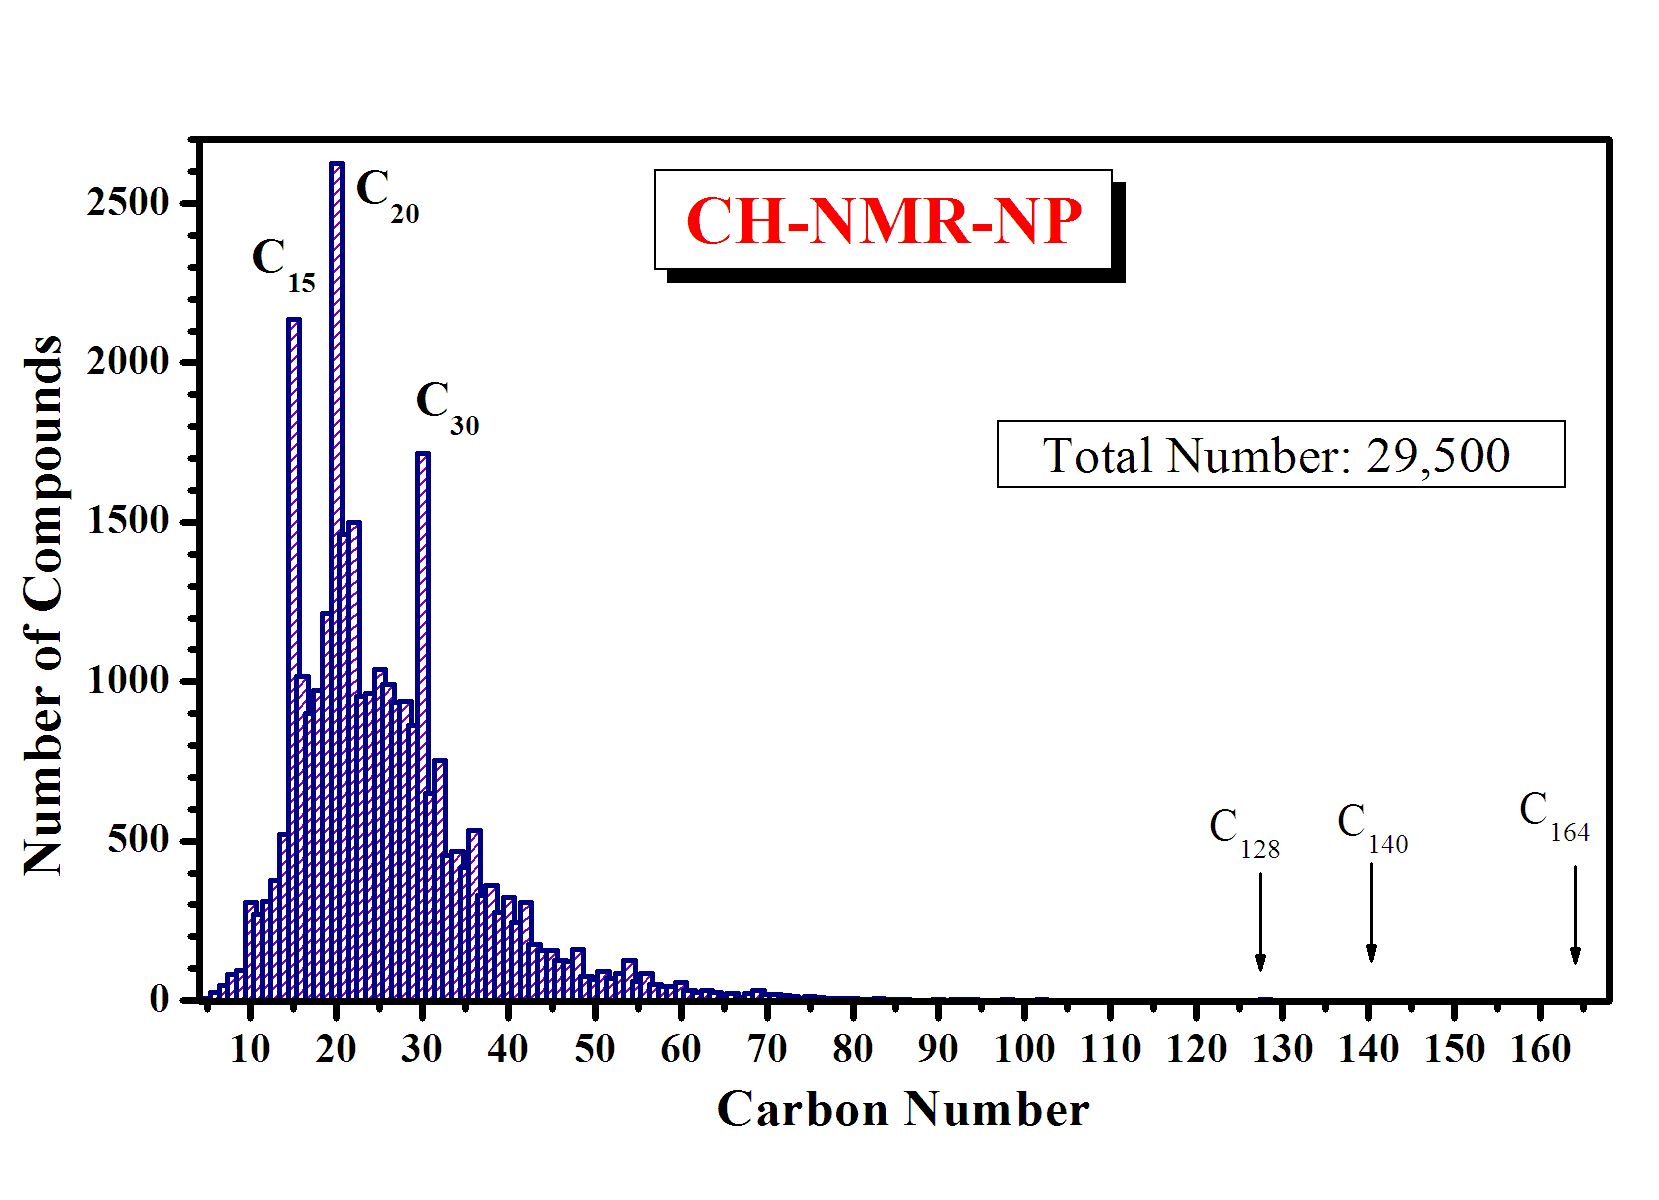 Distribution by carbon number